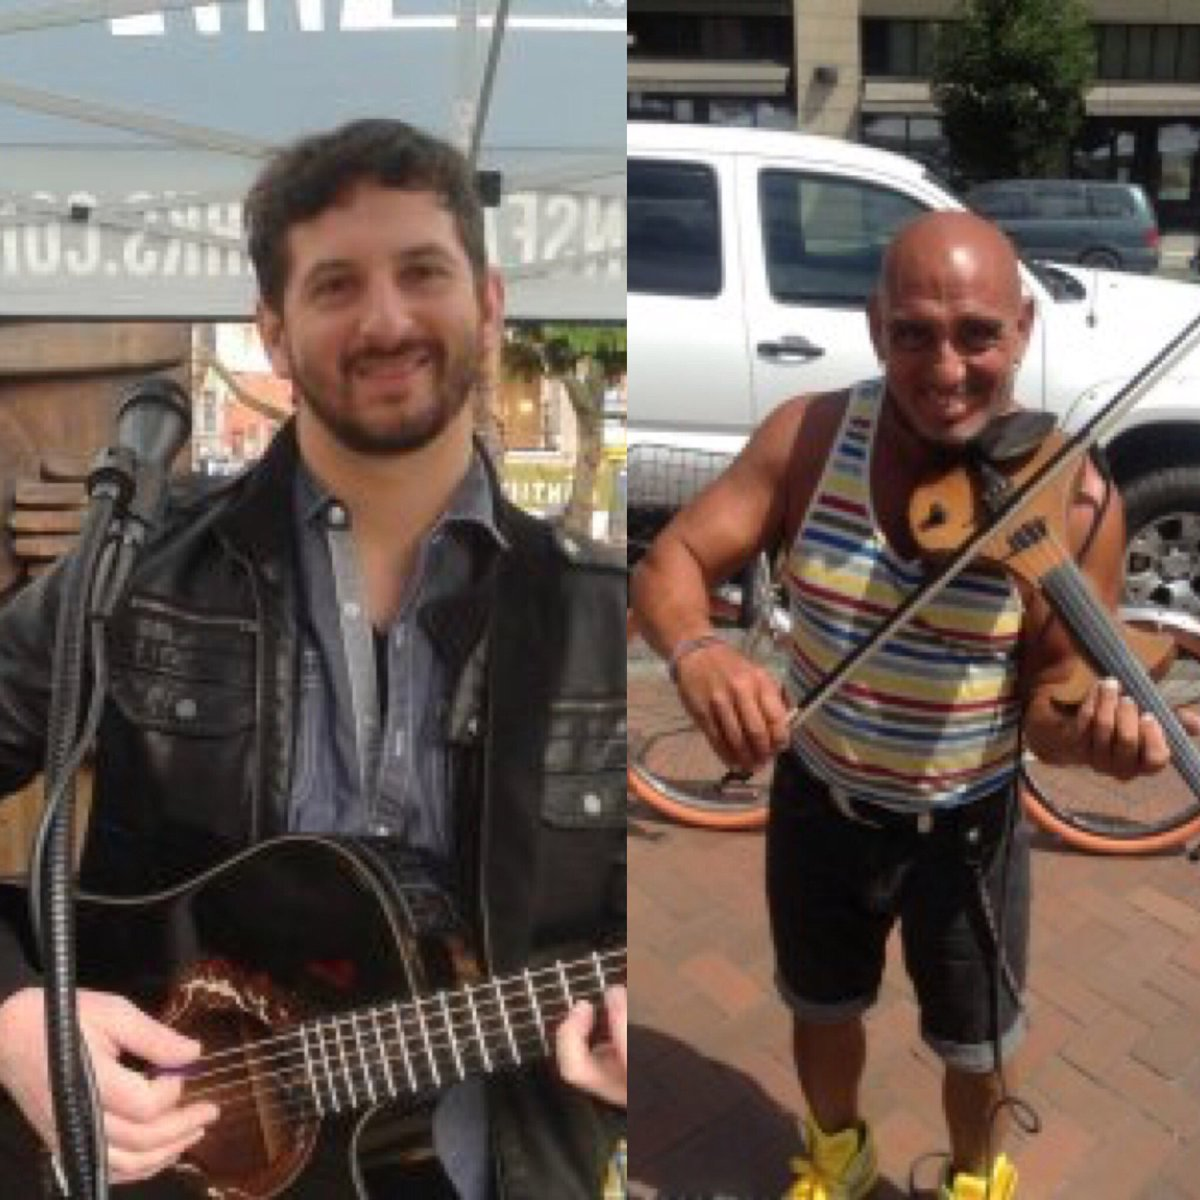 #live music 11:30-1:30 #electricviolin at #westlakepark by Pasquale Santos, #guitarist @juddwasserman at #occidentalpark By @downtownseattle<br>http://pic.twitter.com/9CHnrx83sy